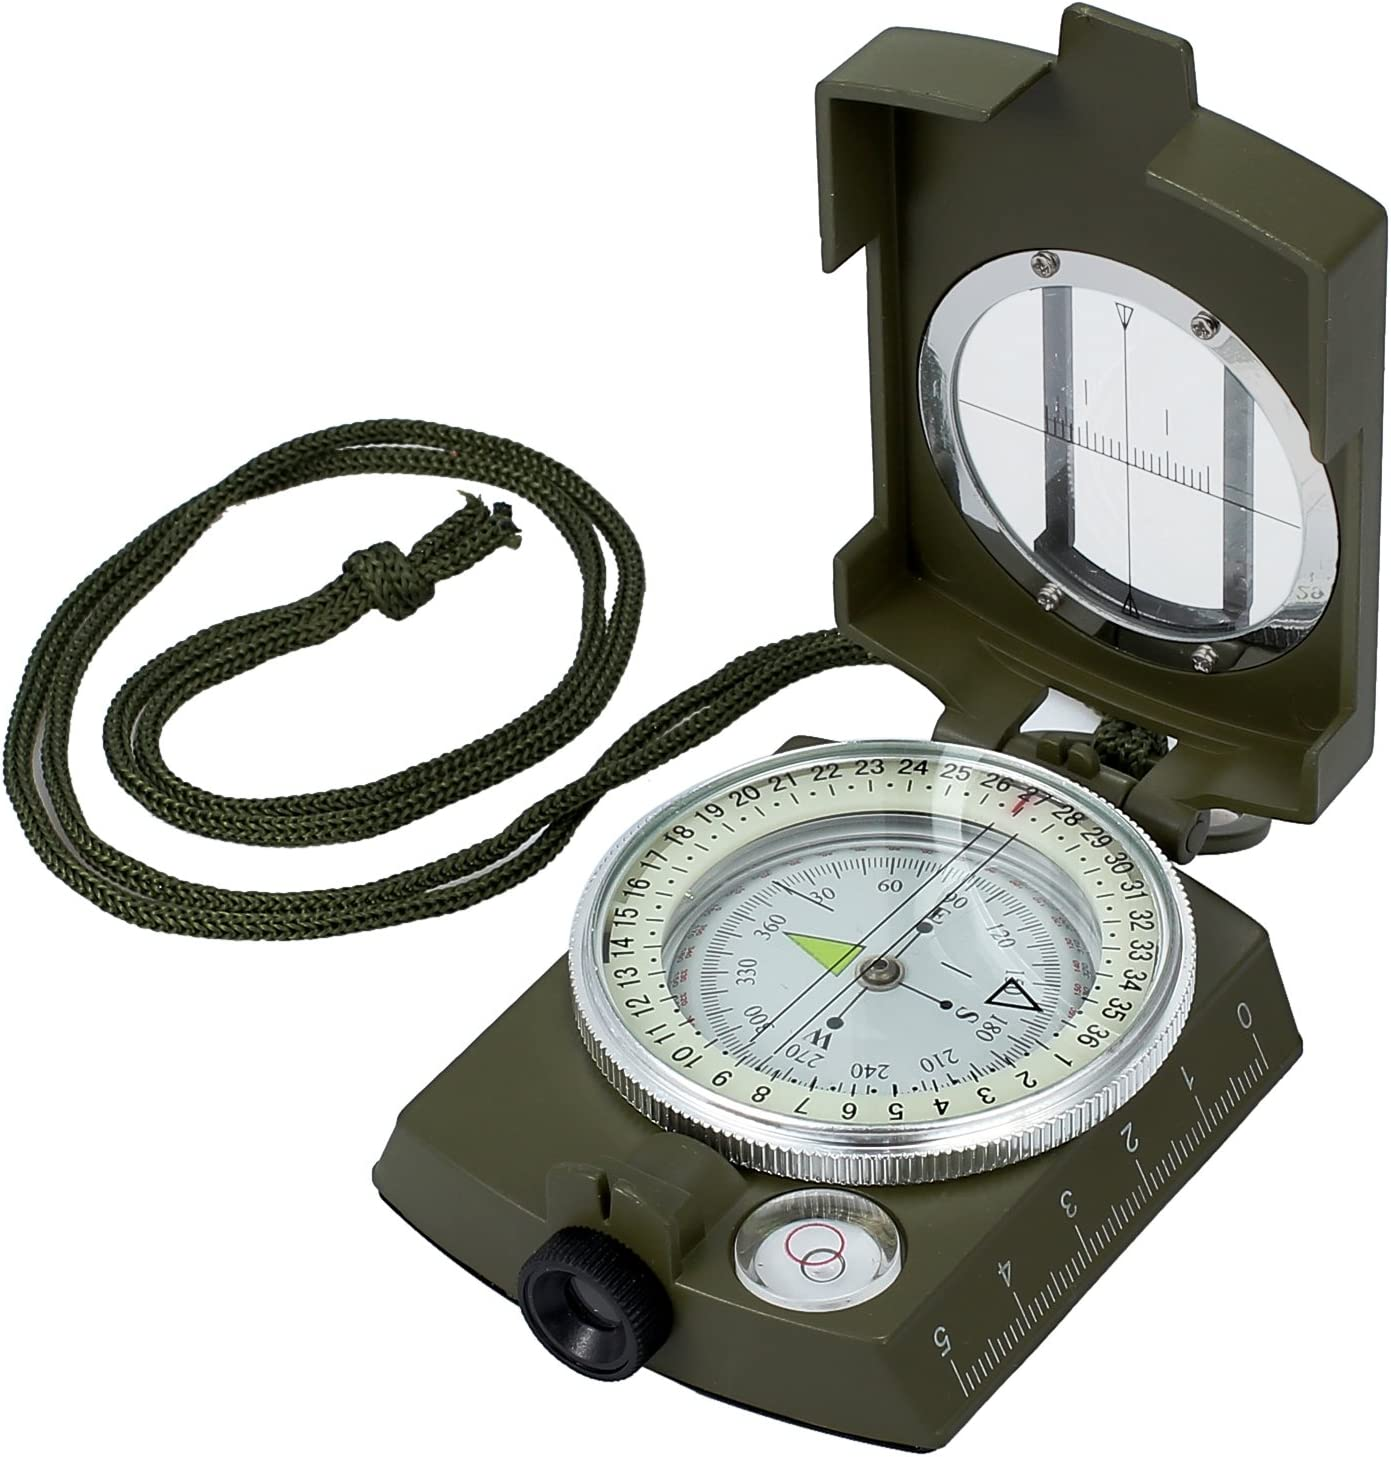 GWHOLE Waterproof Compass for Hiking Military Navigation with Pouch Lanyard and